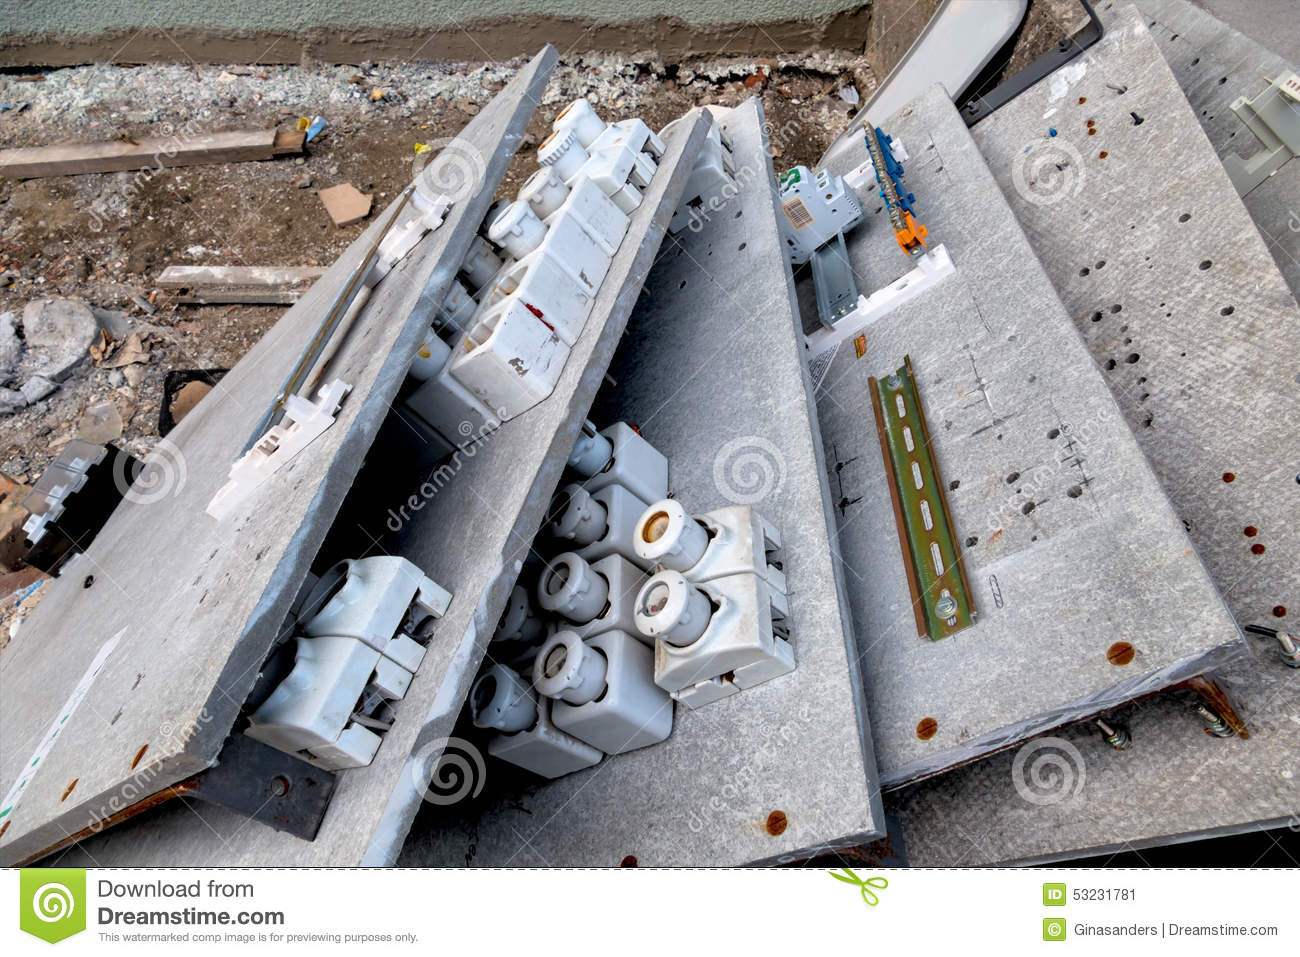 old fuse boxes stock image image of energy electric 53231781 rh dreamstime com